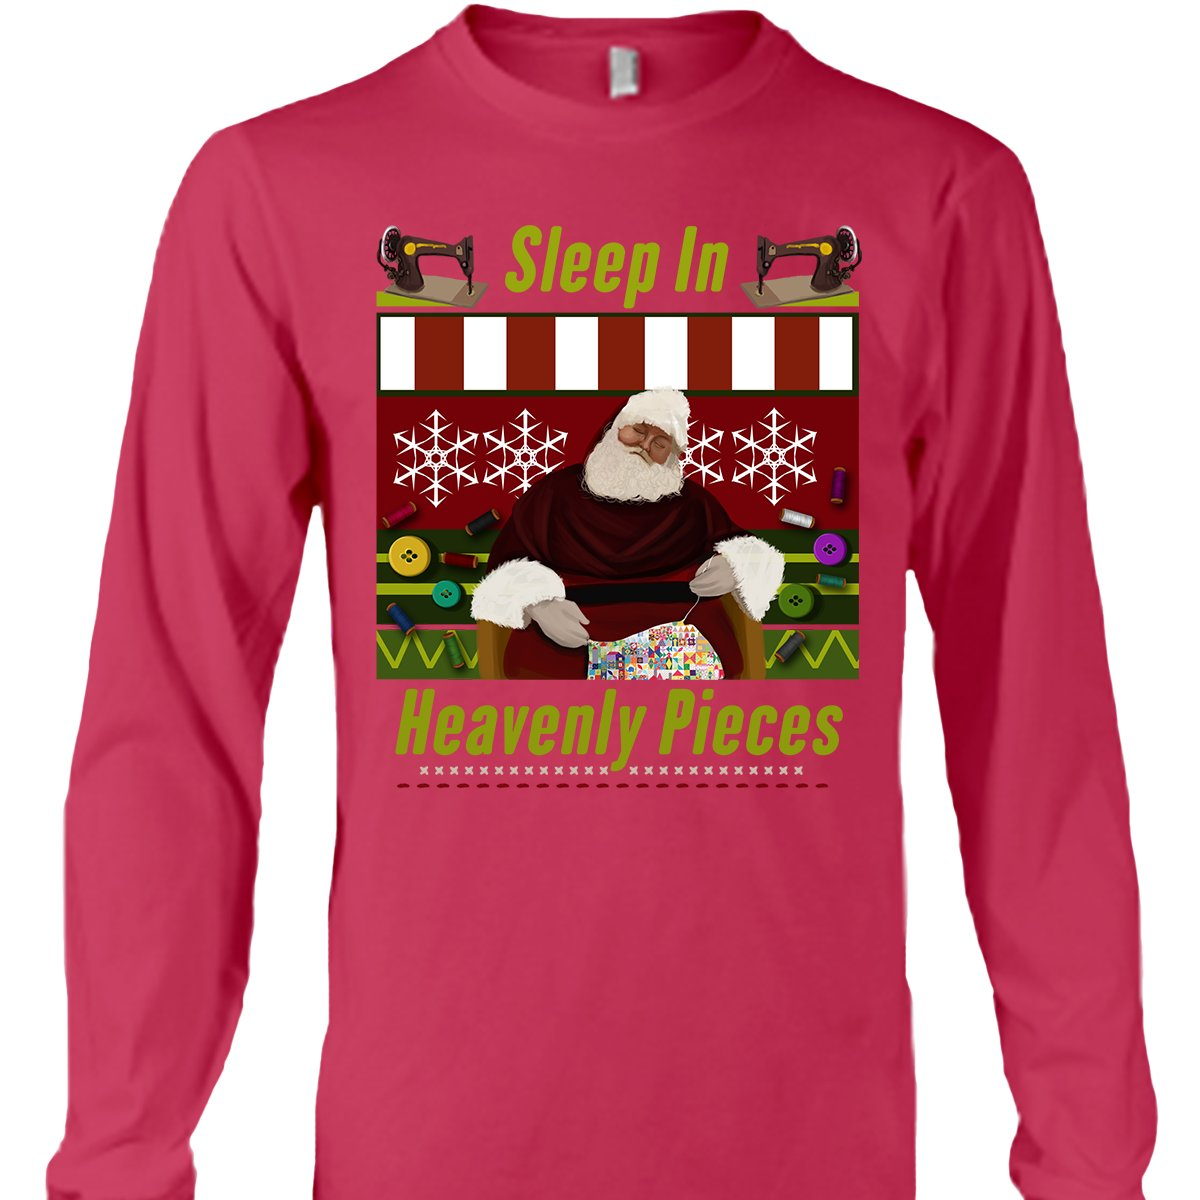 Heavenly Pieces Christmas Shirt